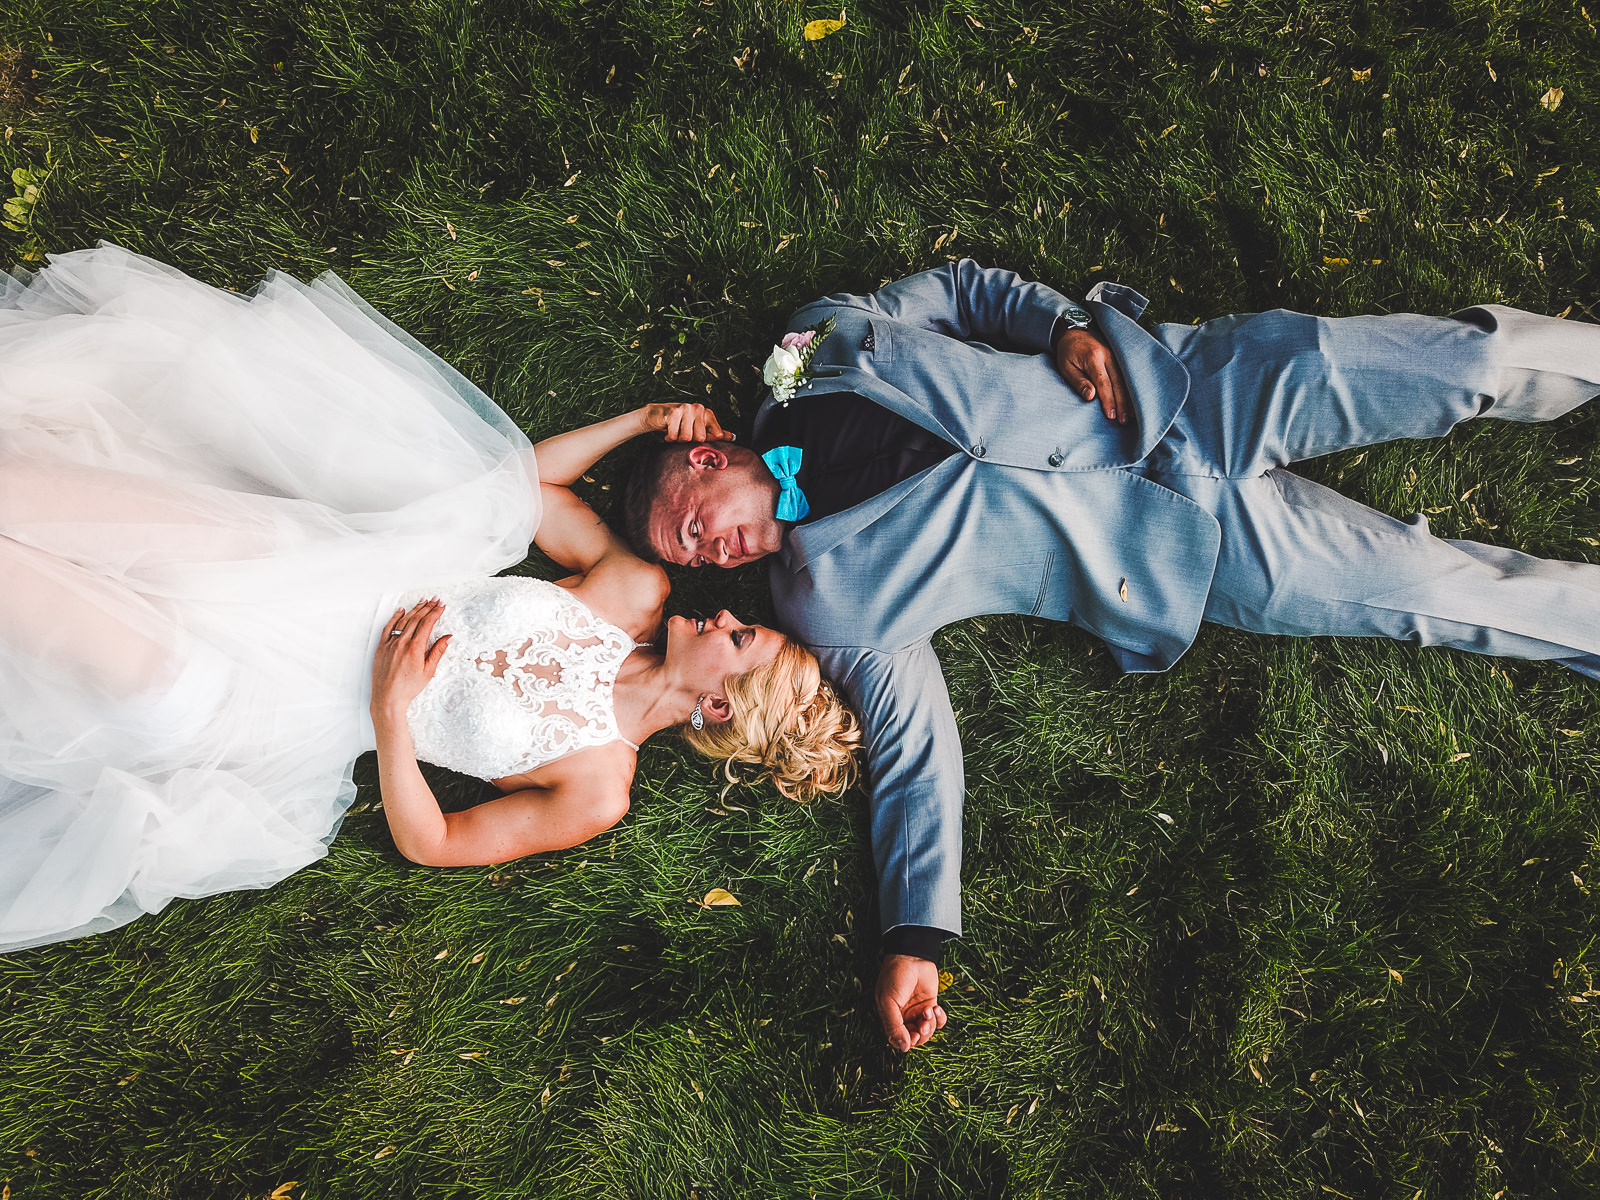 Bride in her white dress and groom in his gray suit lay in the grass smiling at each other